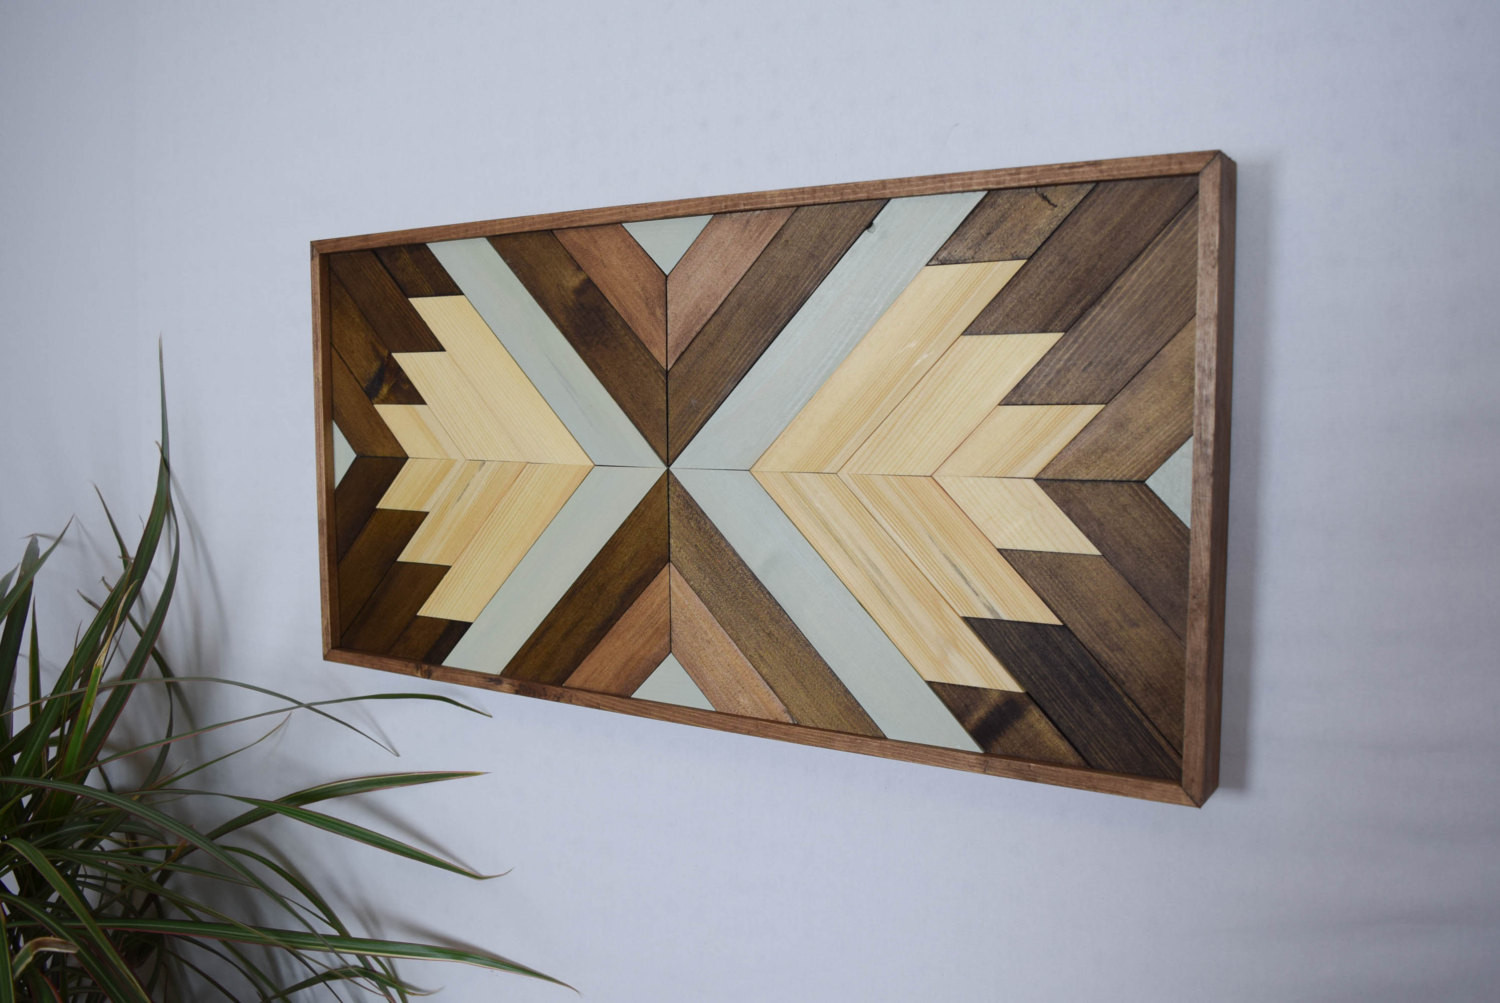 Best ideas about Wooden Wall Art . Save or Pin Wood Wall Art Contemporary Geometric Wood by Now.